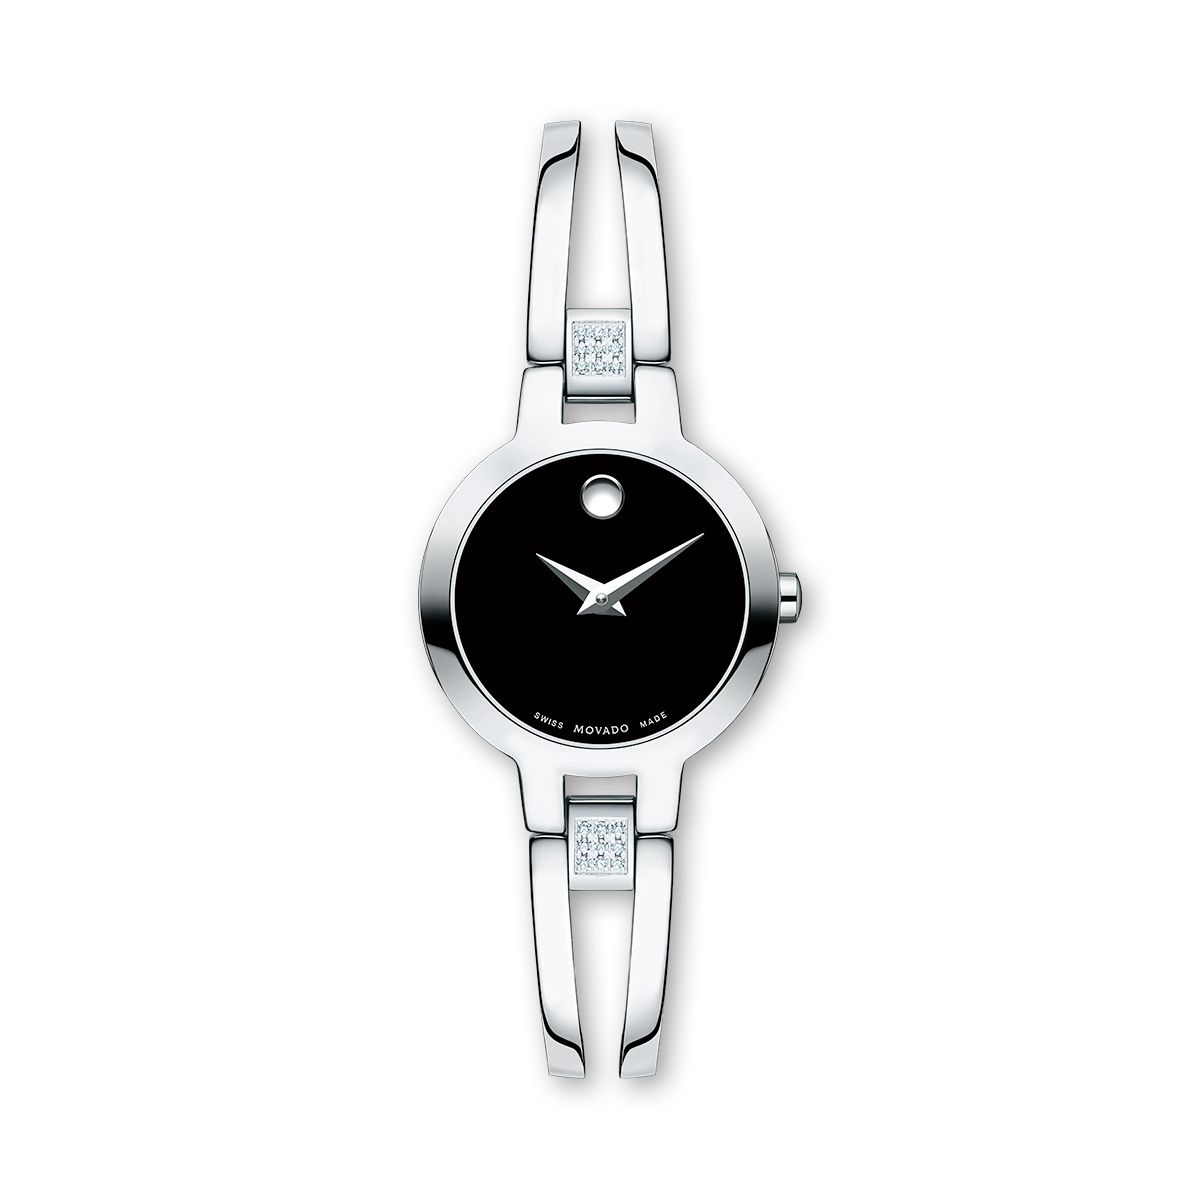 91f73d26afc022 Movado Watches - Macy's